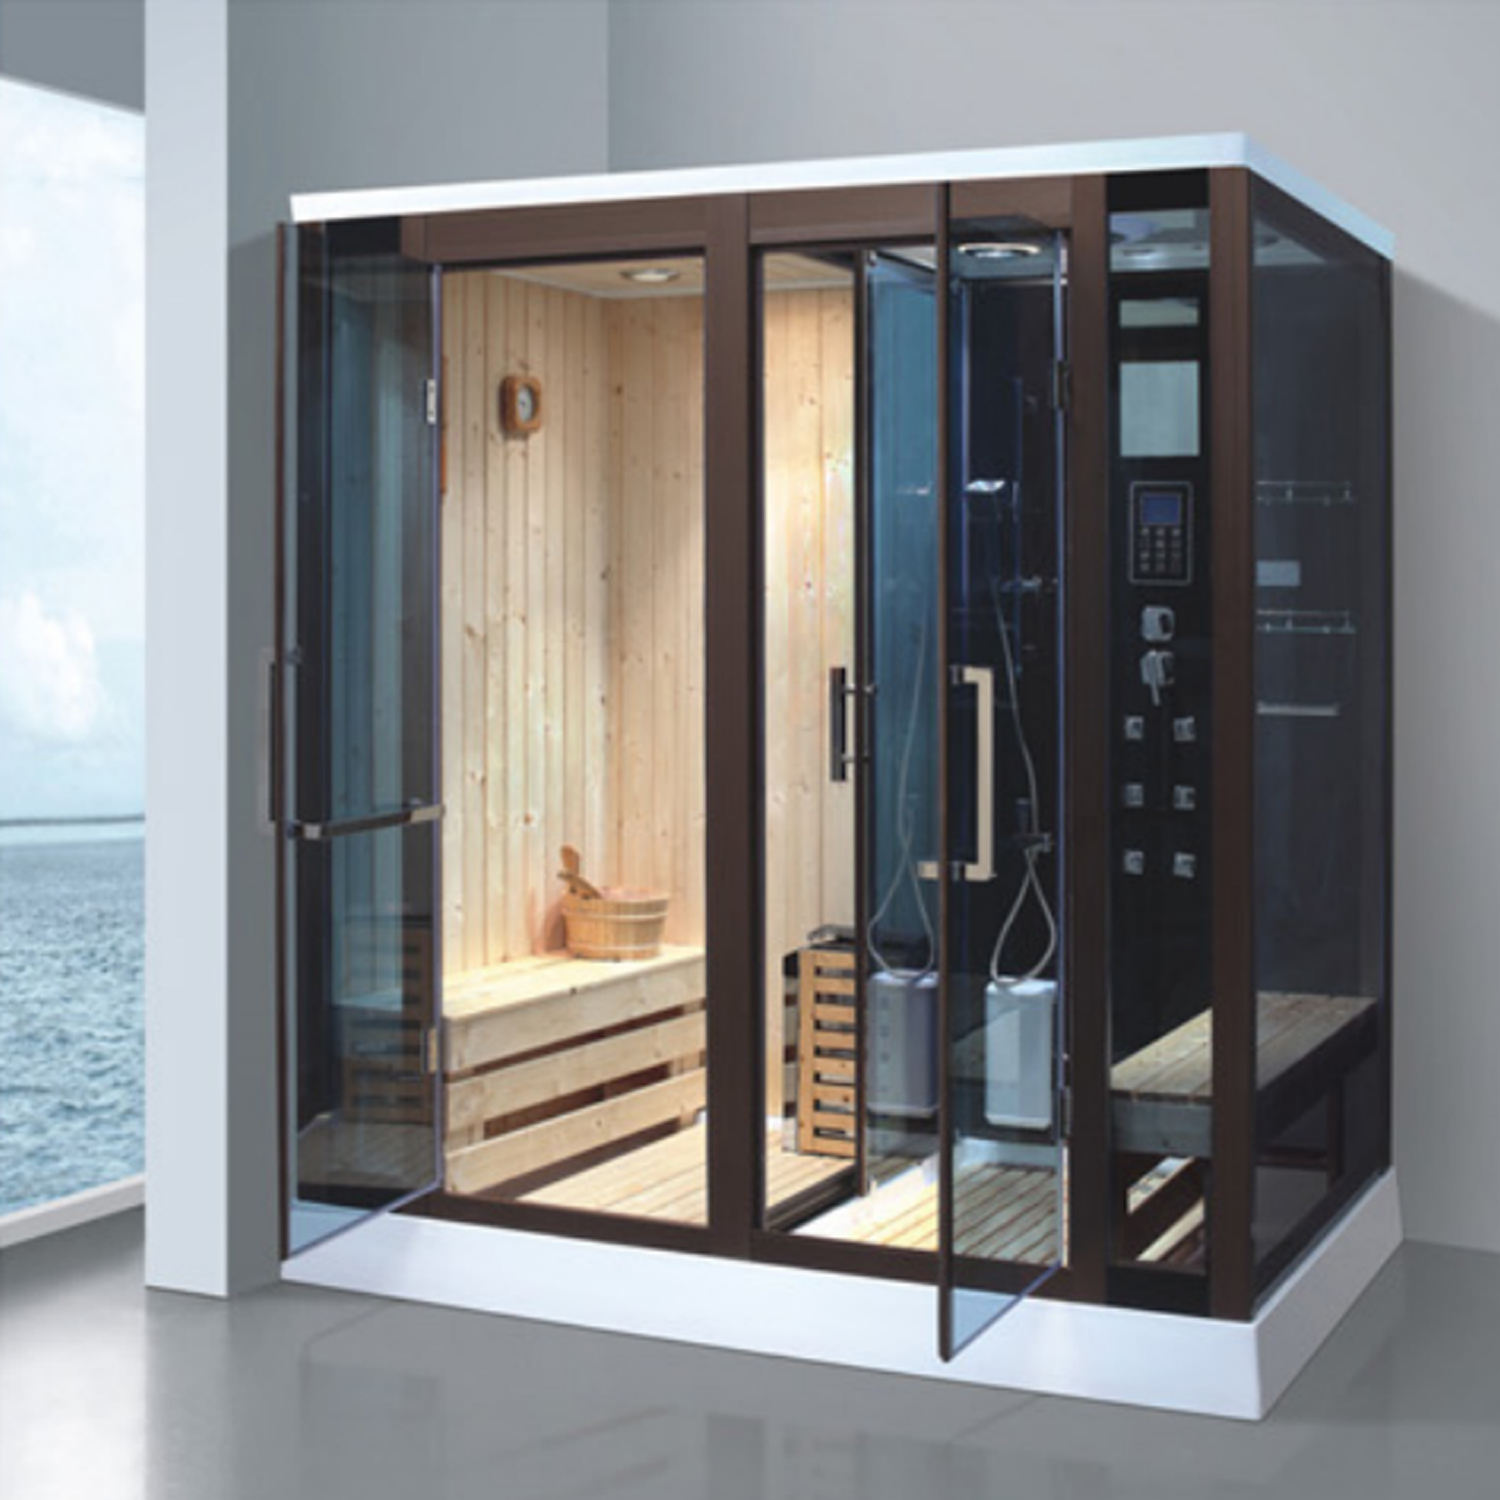 sauna and steam combined room/ sauna and steam room/ sauna bath price